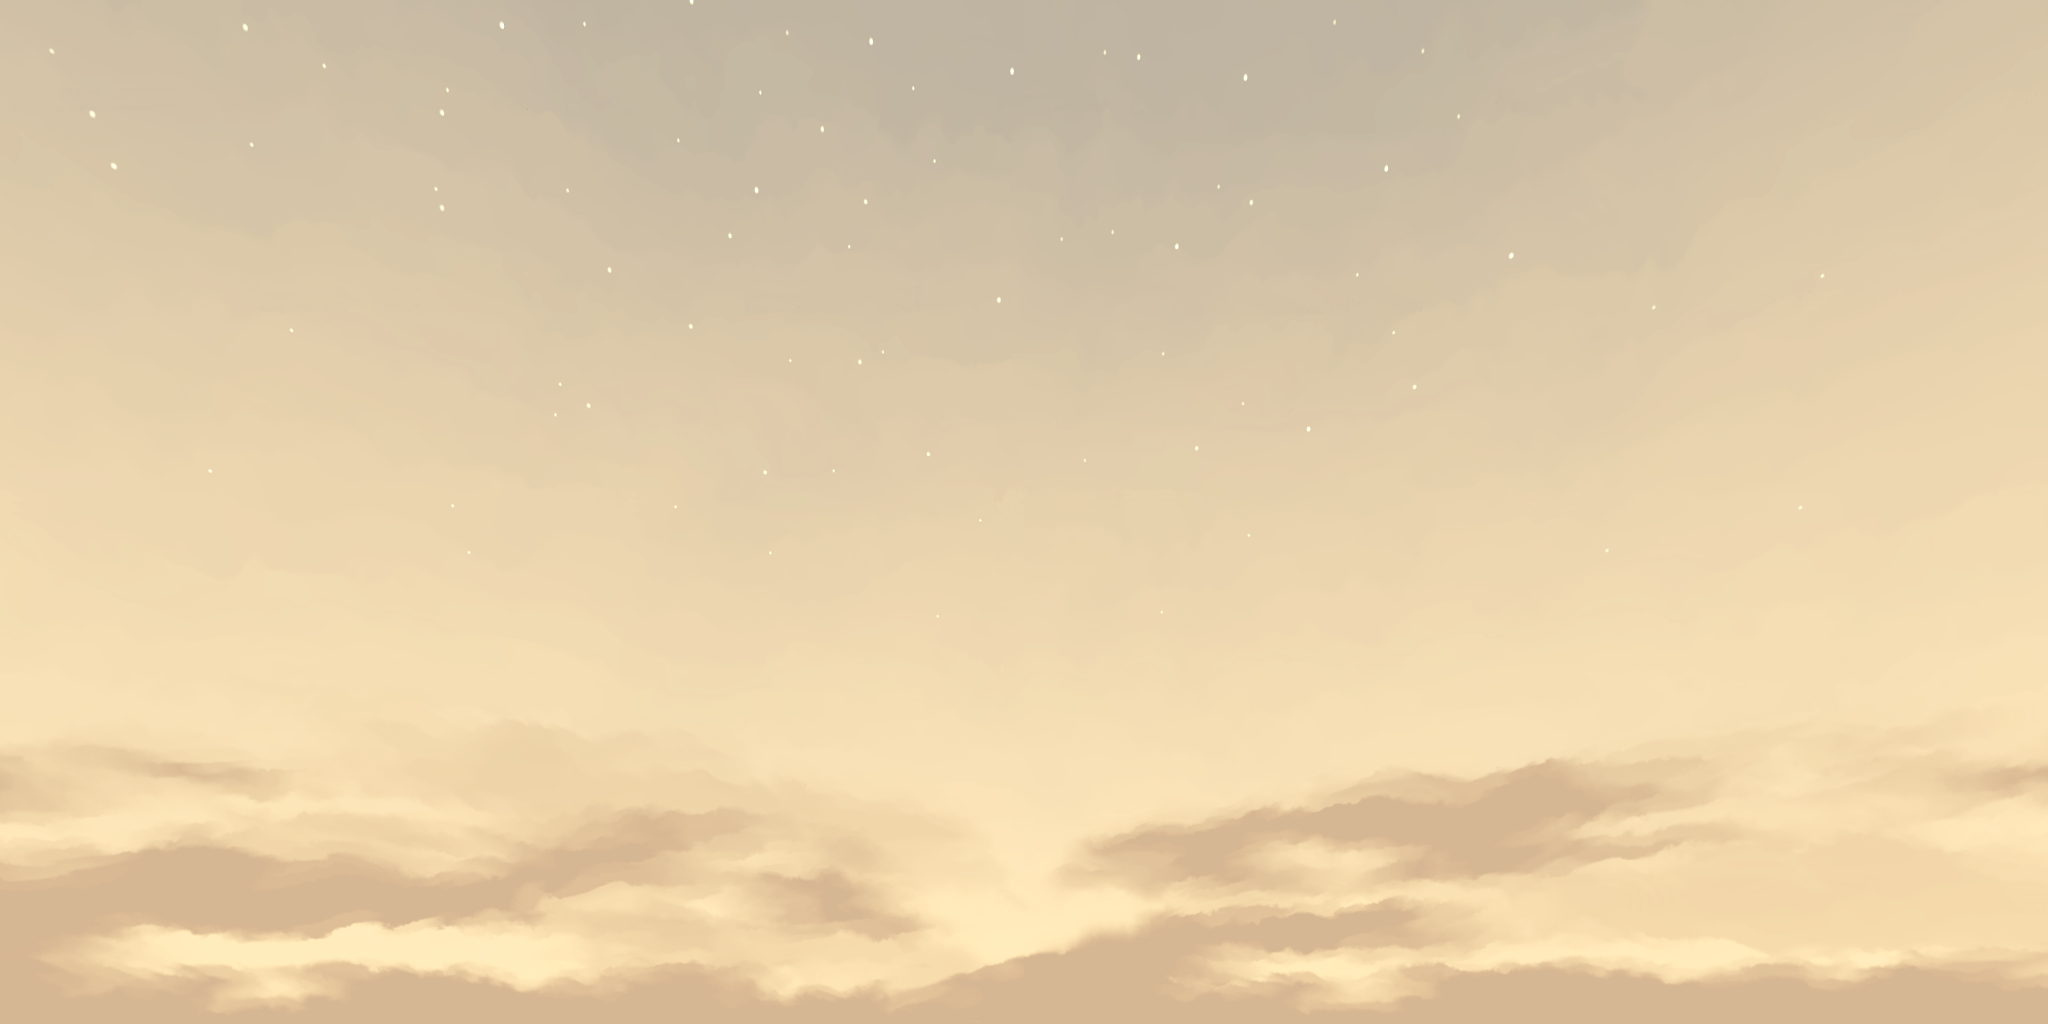 sky_gold_dawn_01bk.png